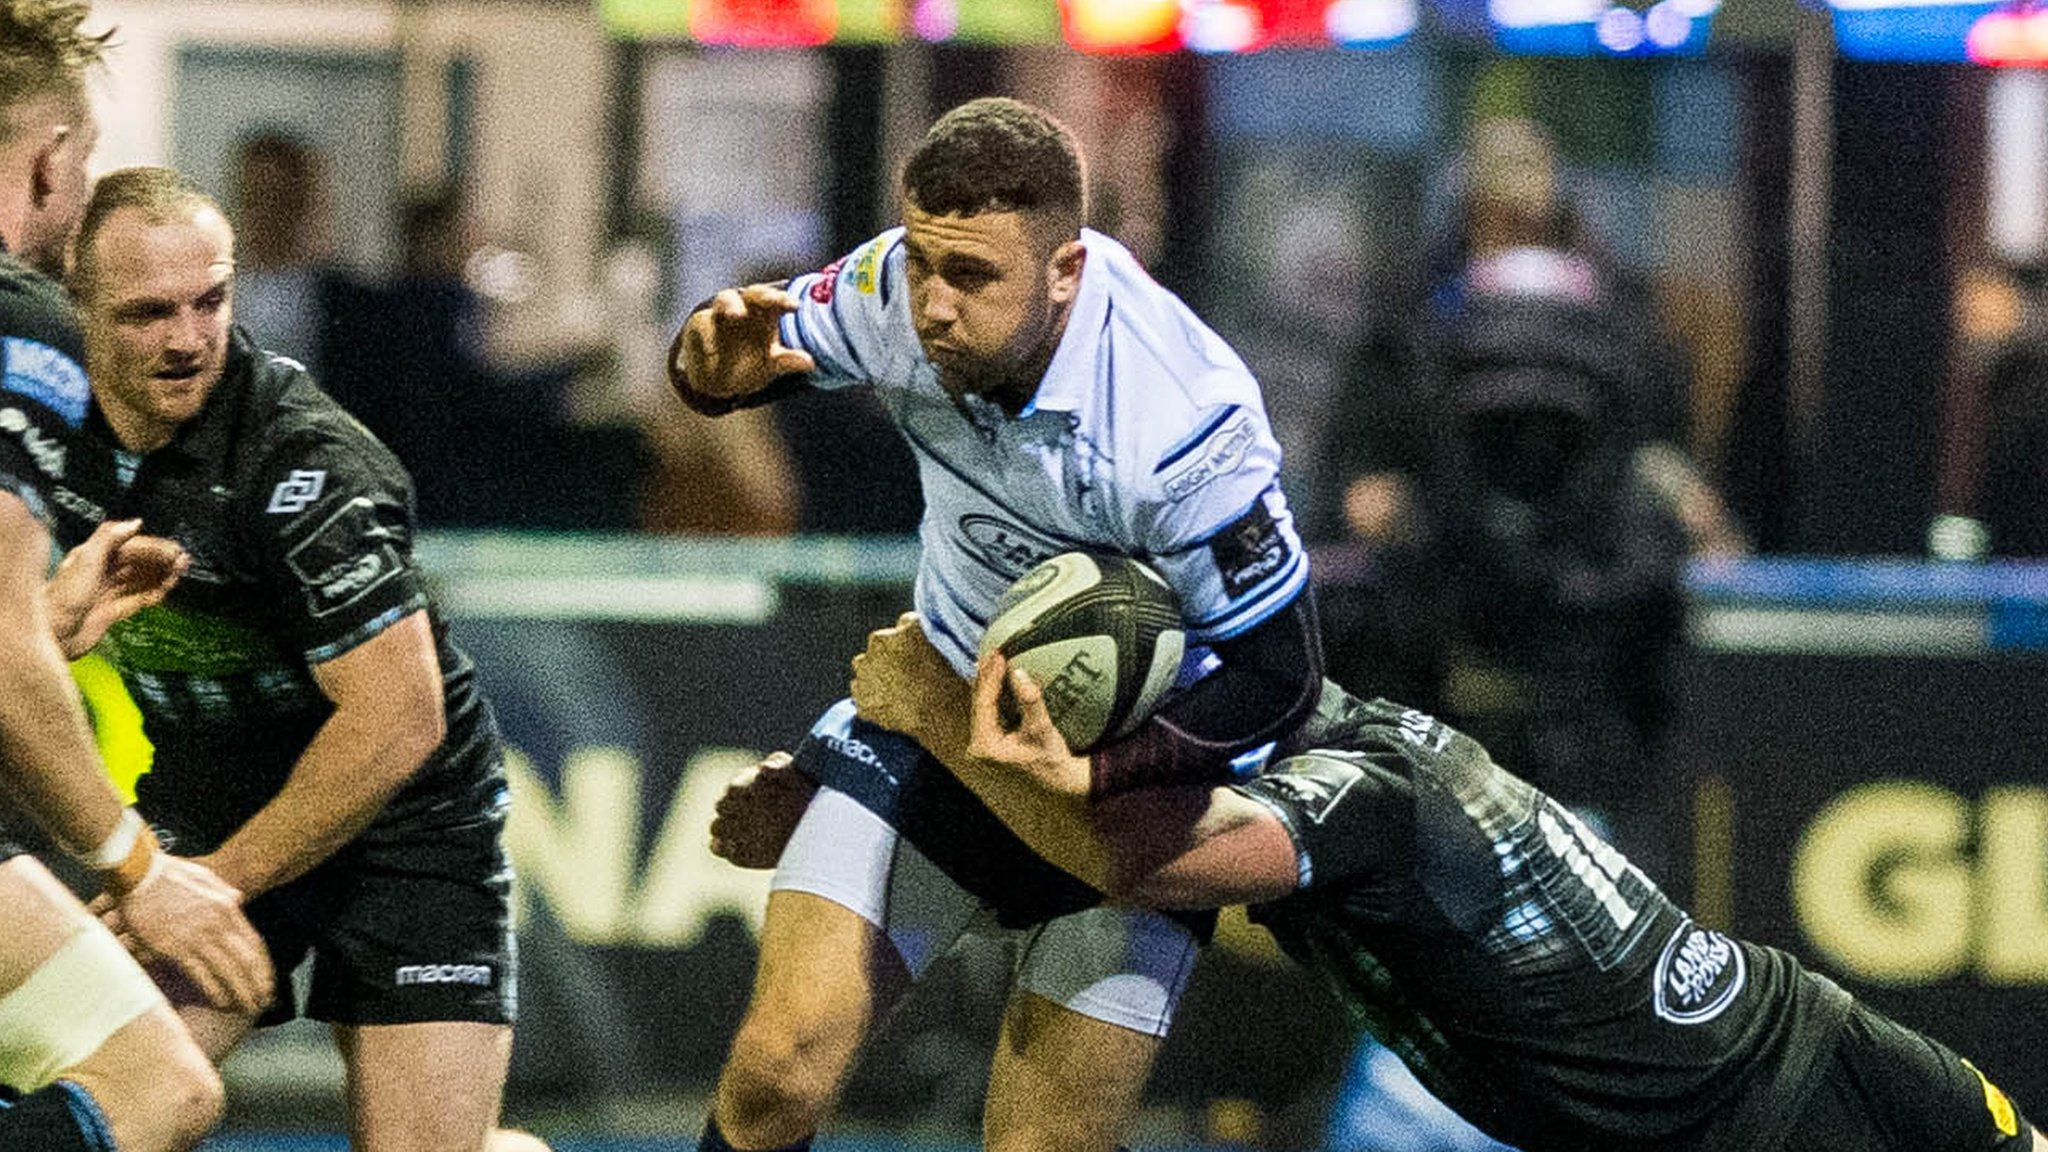 Pro14: Cardiff Blues 34-38 Glasgow Warriors